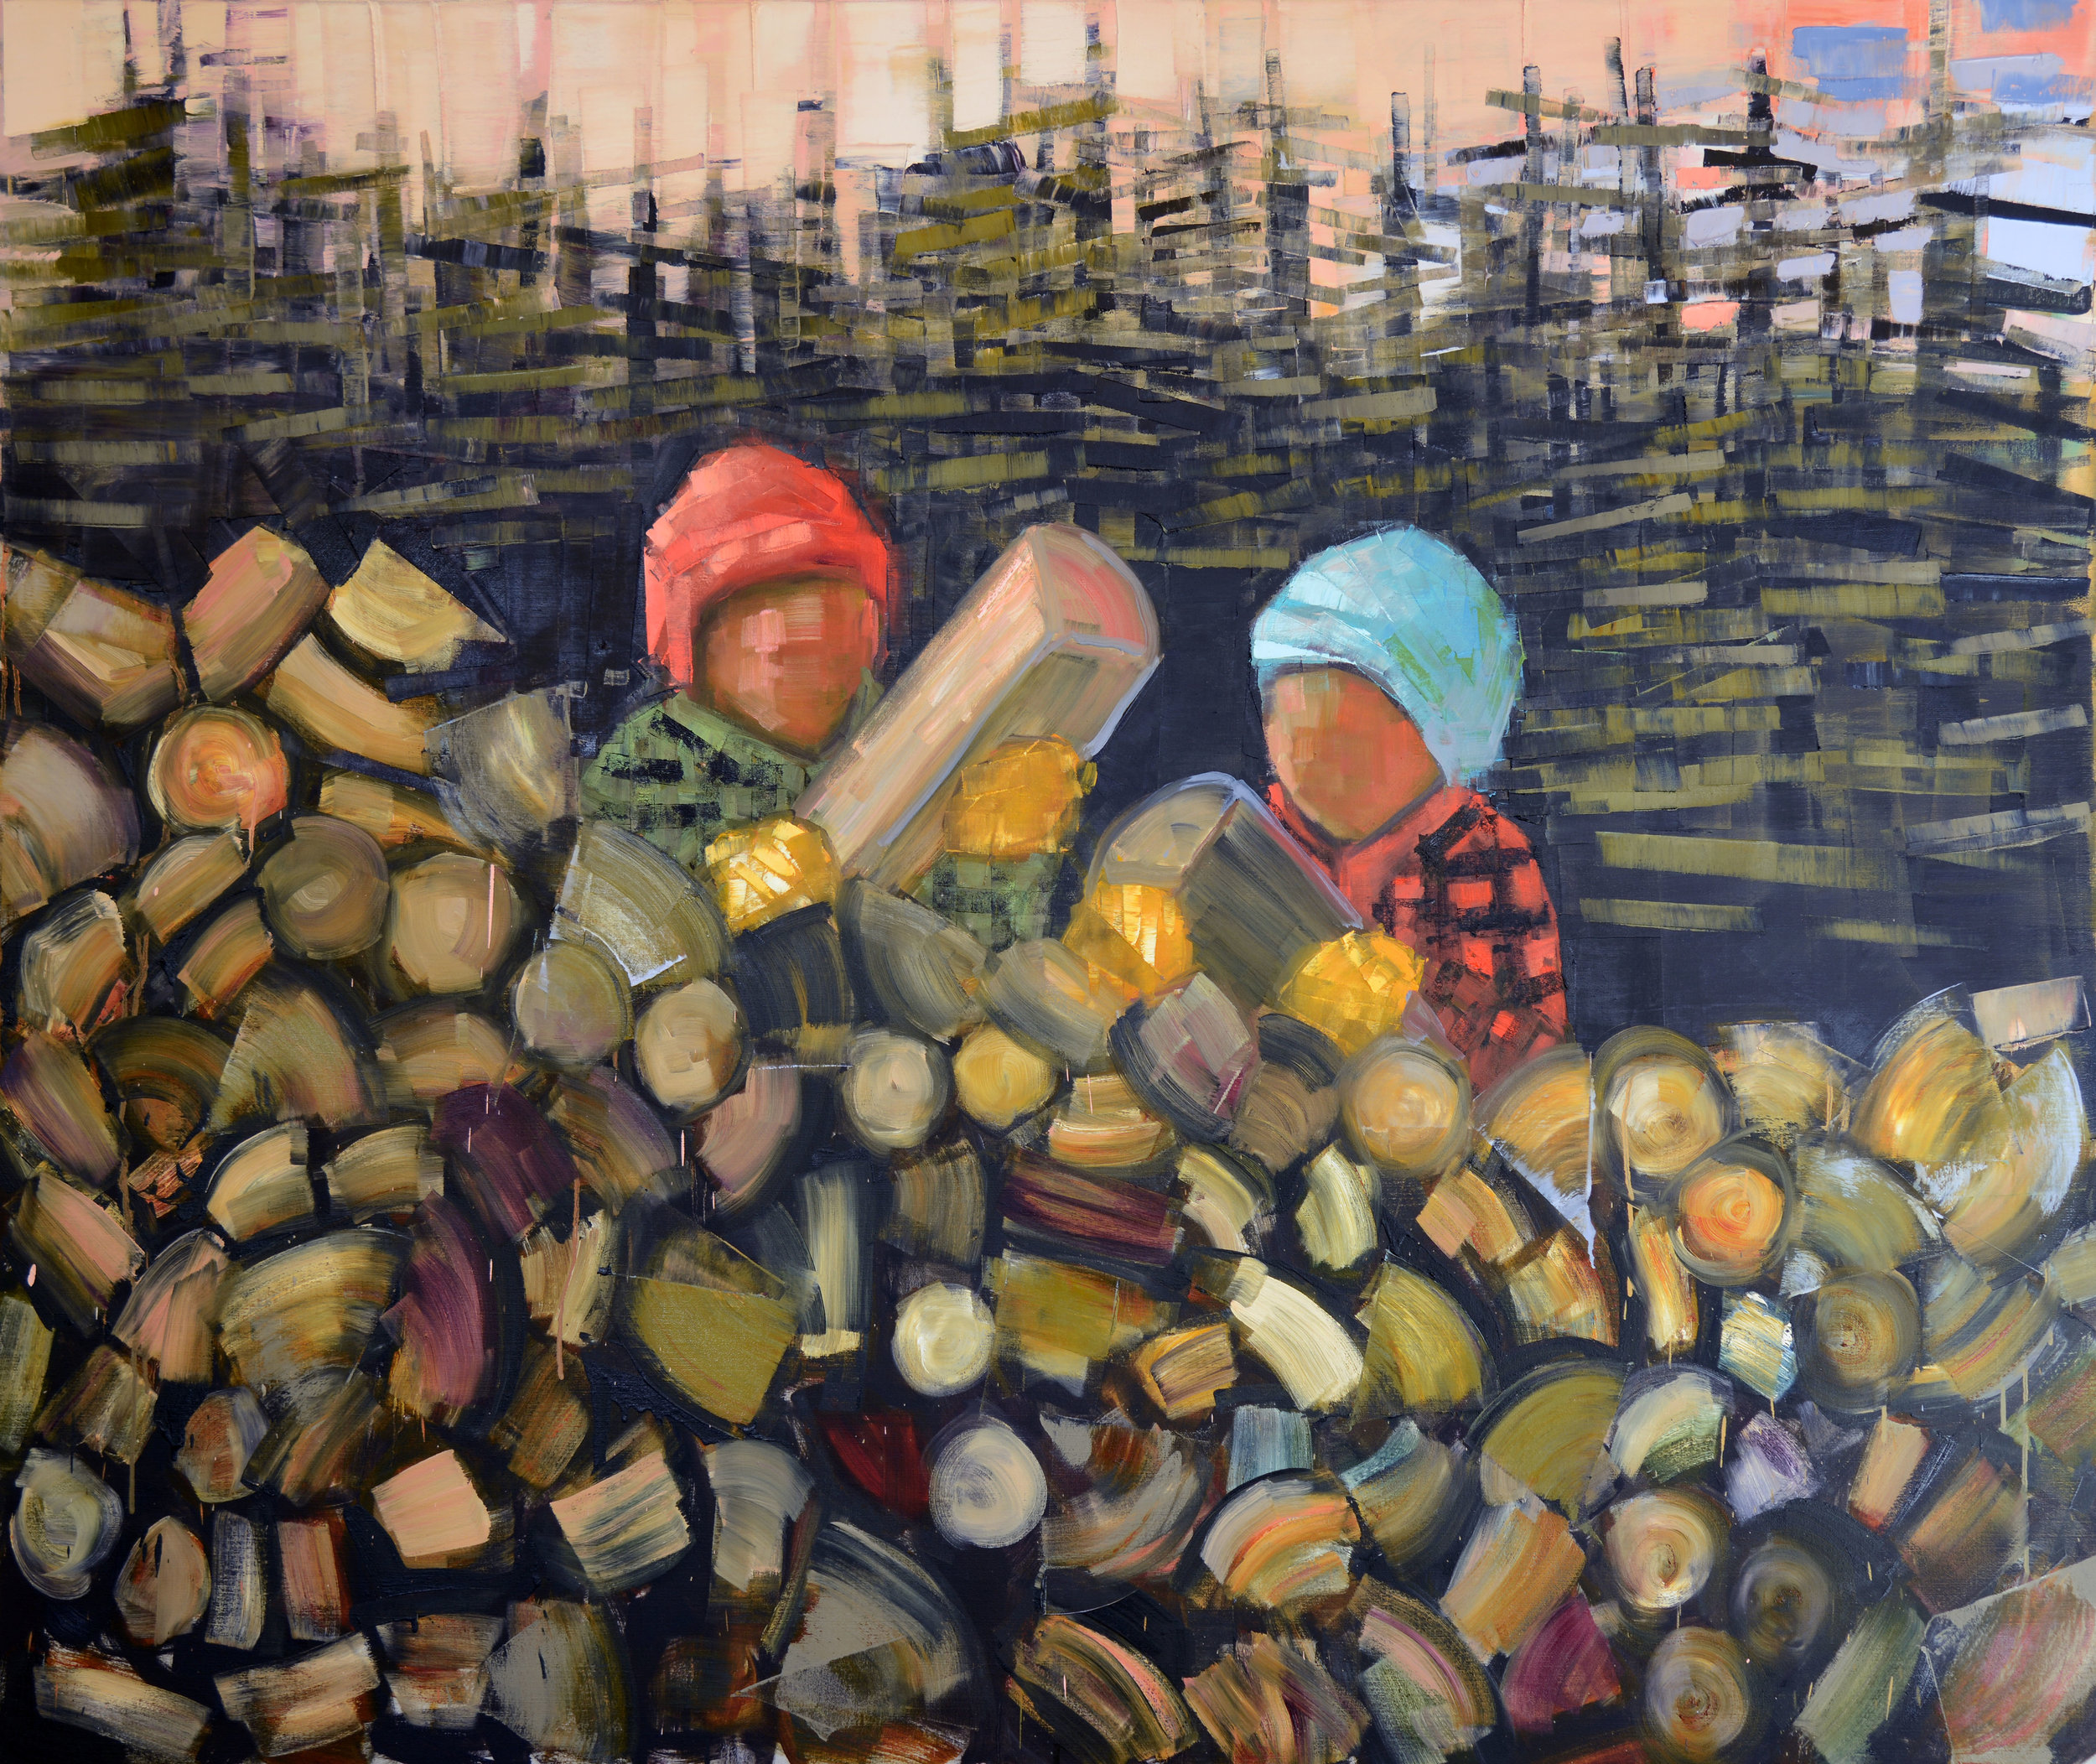 WOOD PILE (STACK)   -PRIVATE COLLECTION-  59 x 70 inches  oil and wax on linen